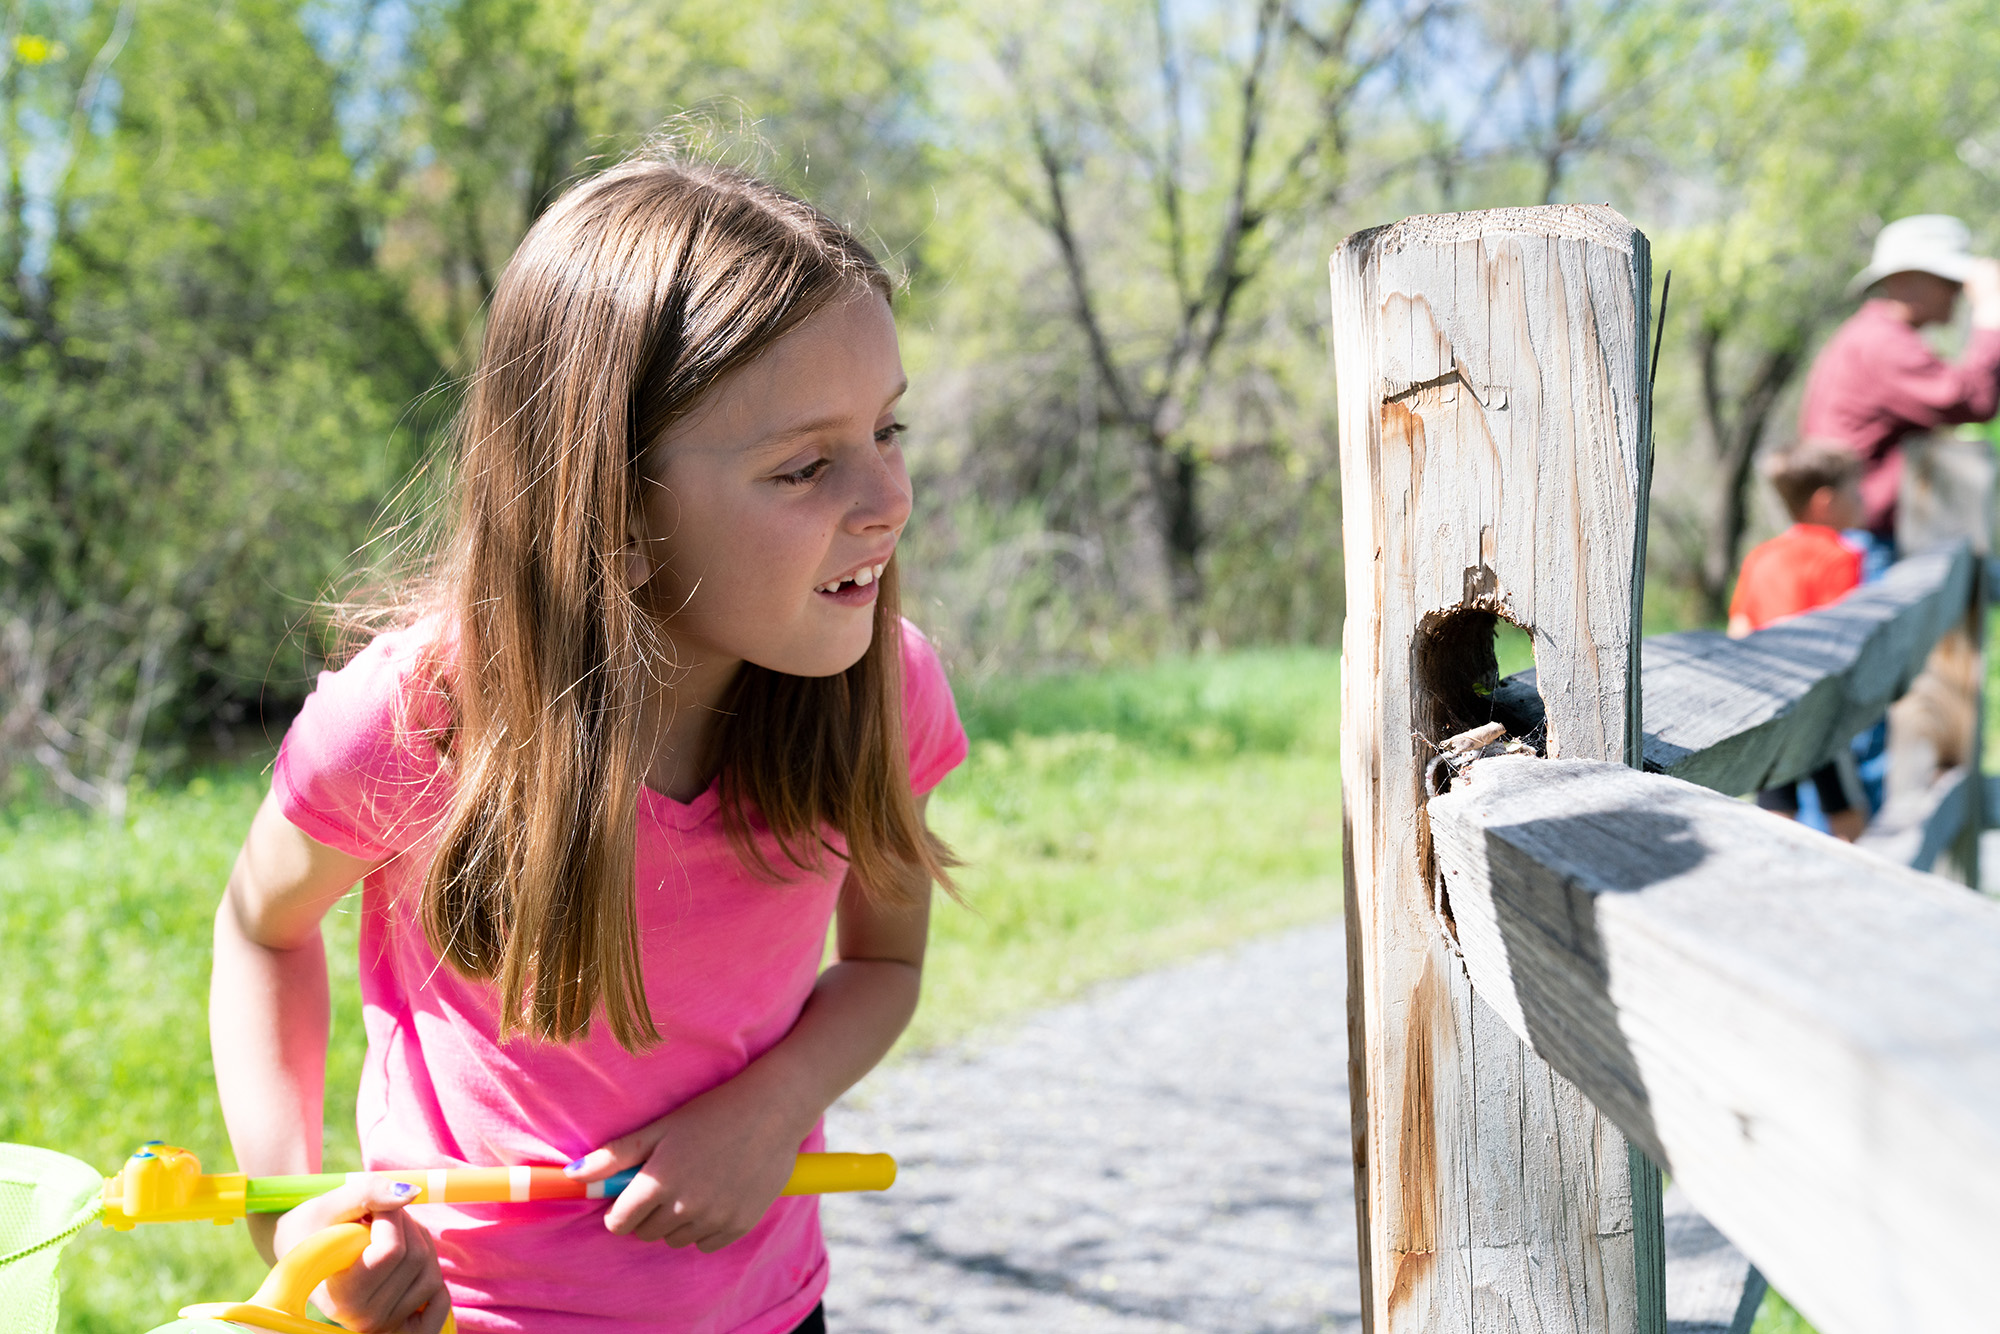 A girl looks at a bug on a fence.